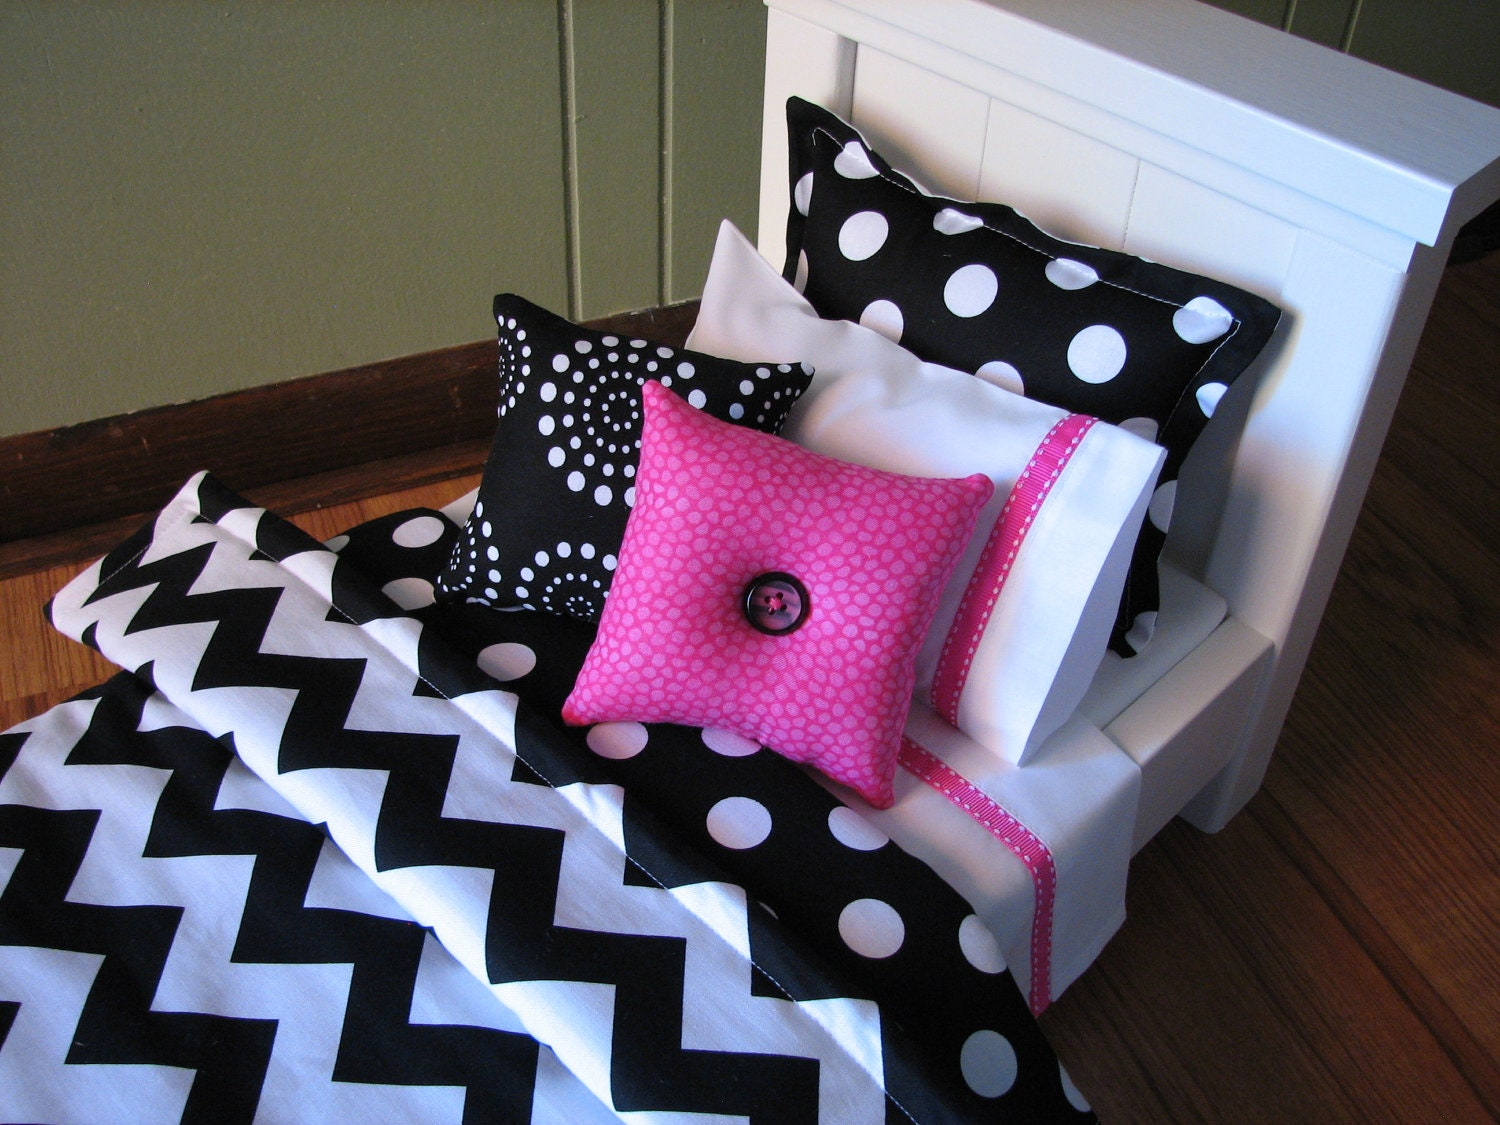 Black and pink bed sheets -  Zoom